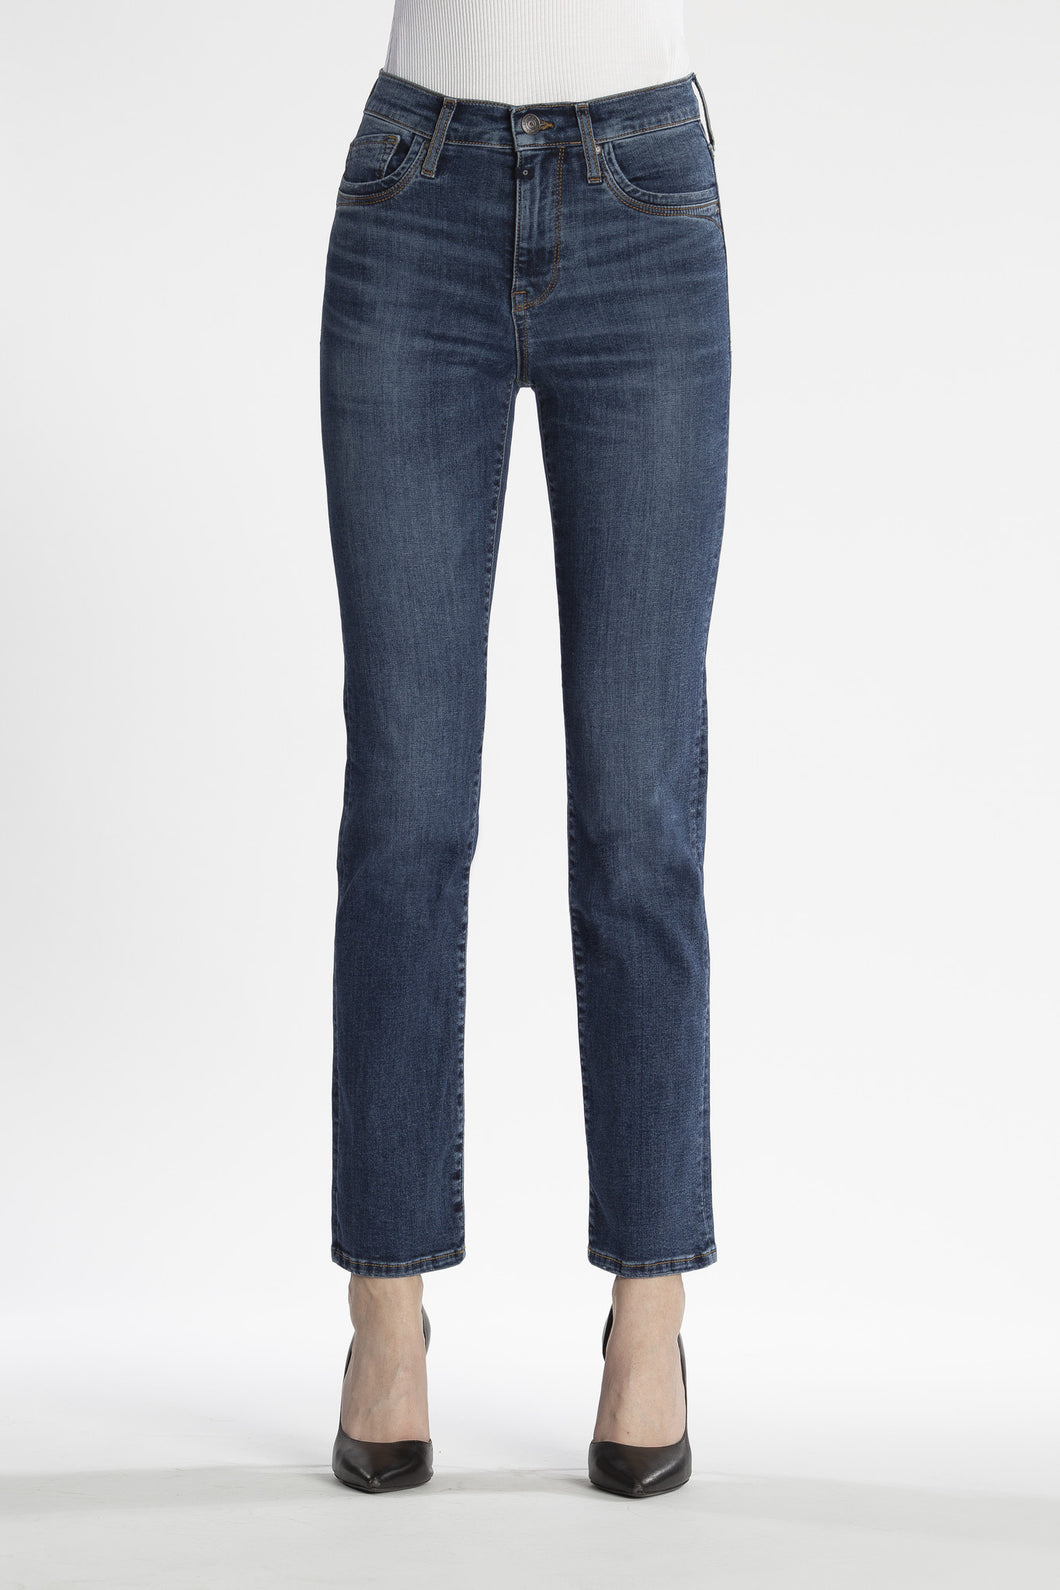 COJ Jeans Hannah - True Blue